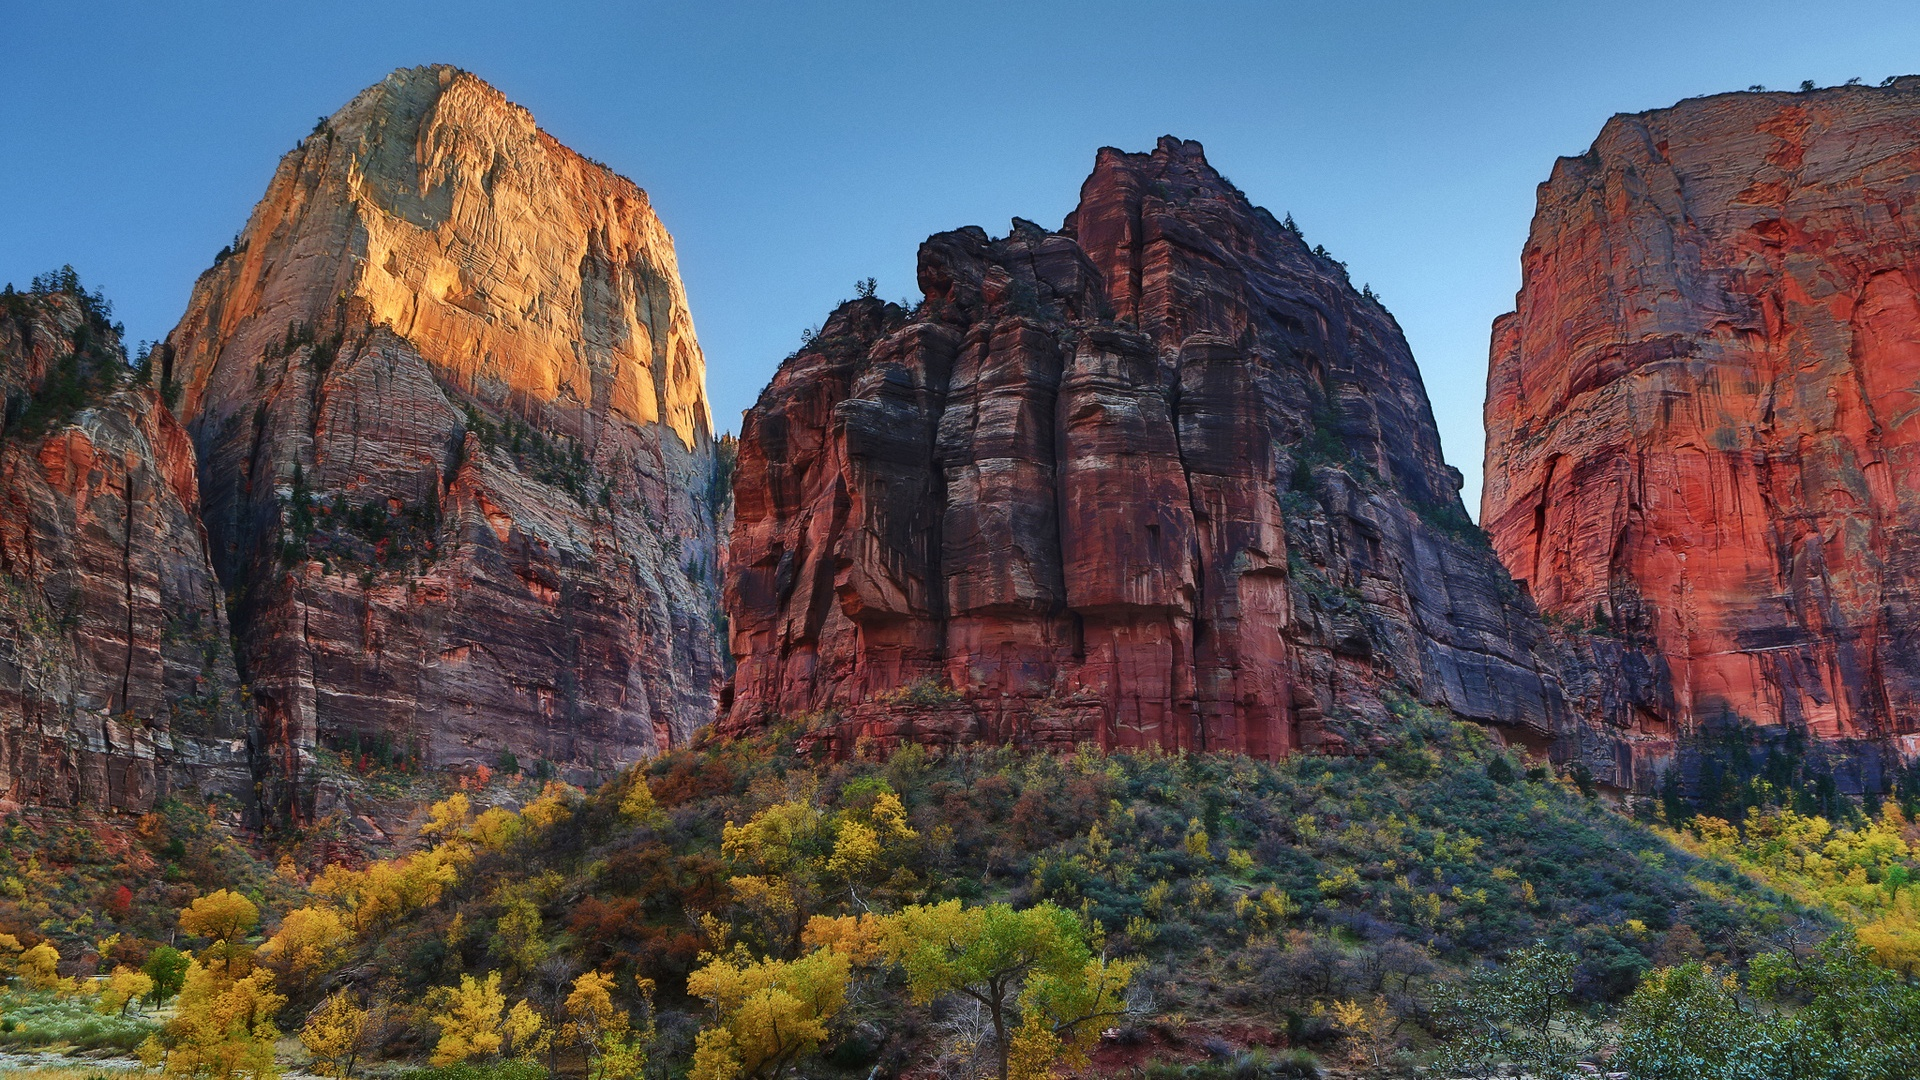 Free Fall Cell Phone Wallpapers Zion National Park Wallpapers Hd Pixelstalk Net